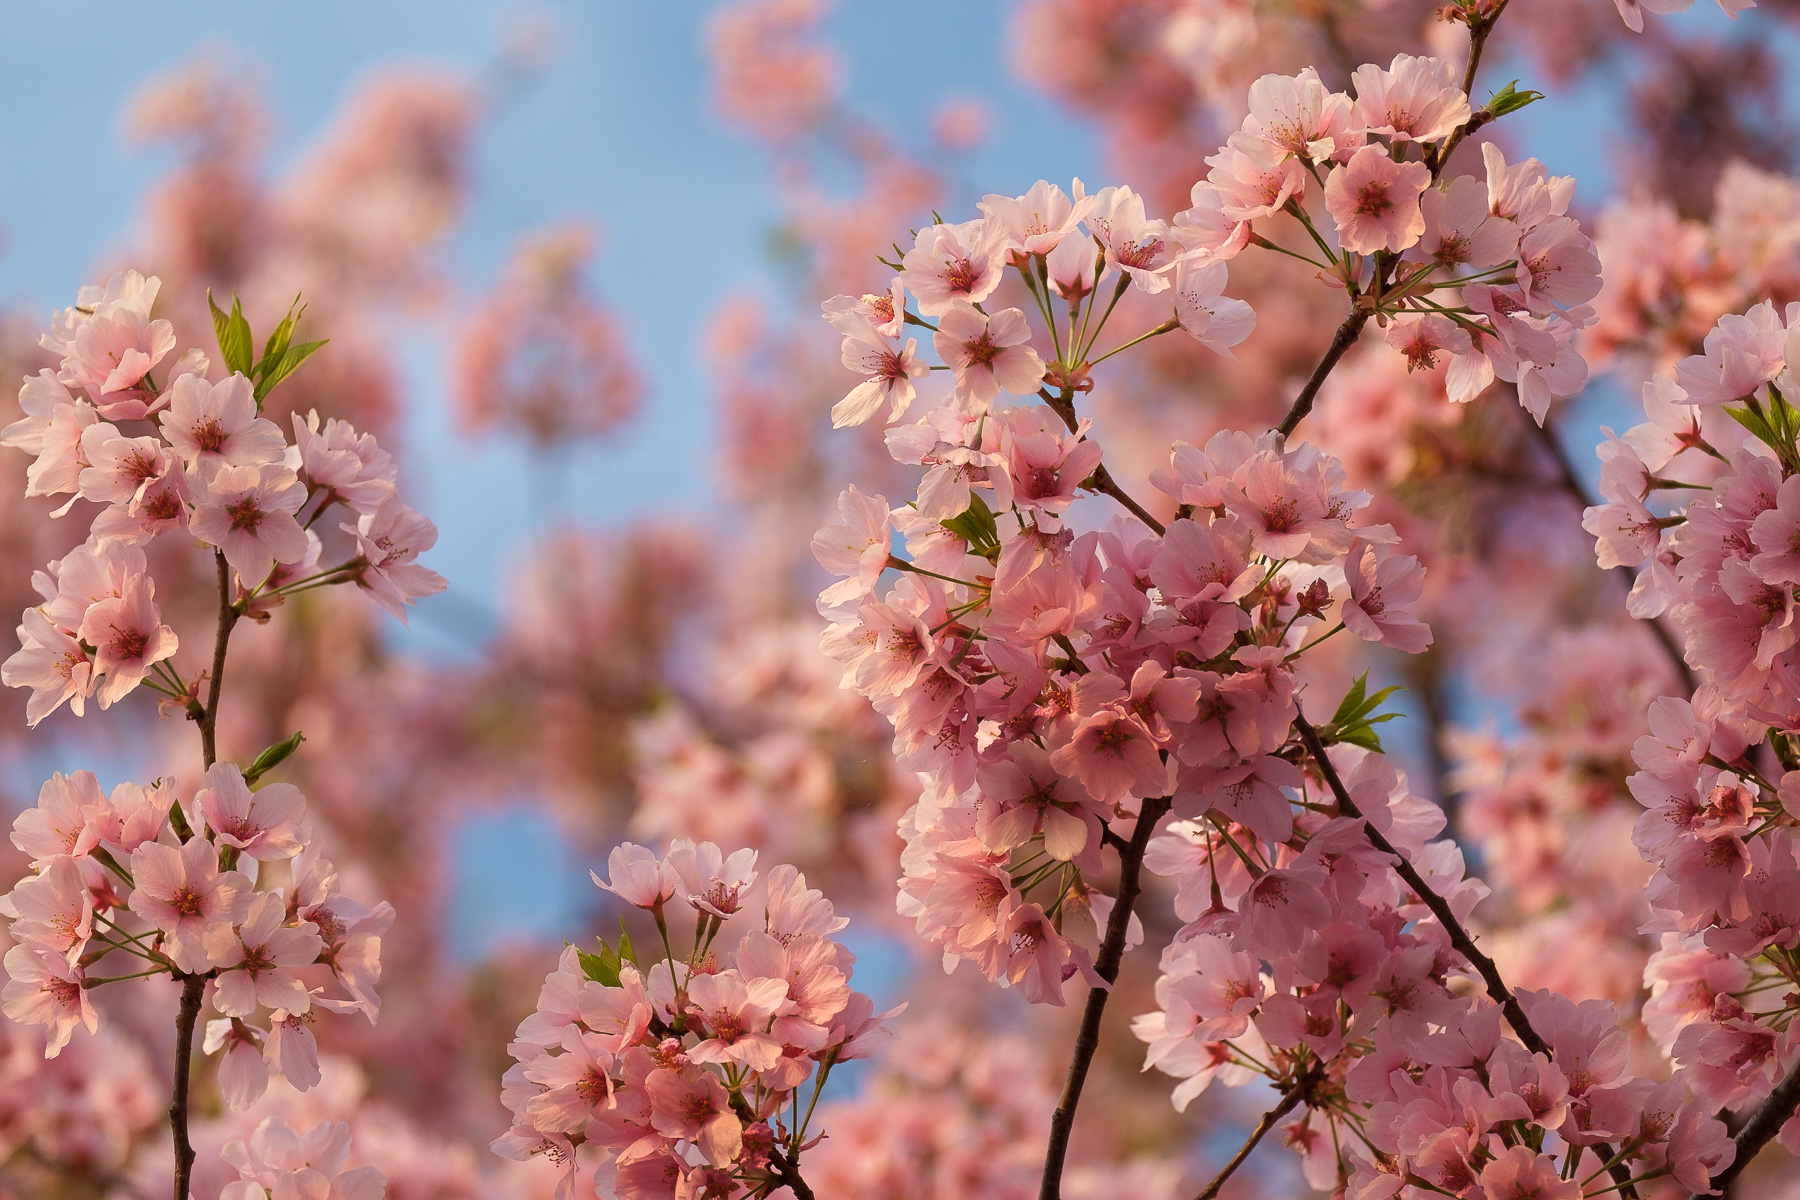 Cherry-Blossom-Branch-Peak-Bloom.jpg